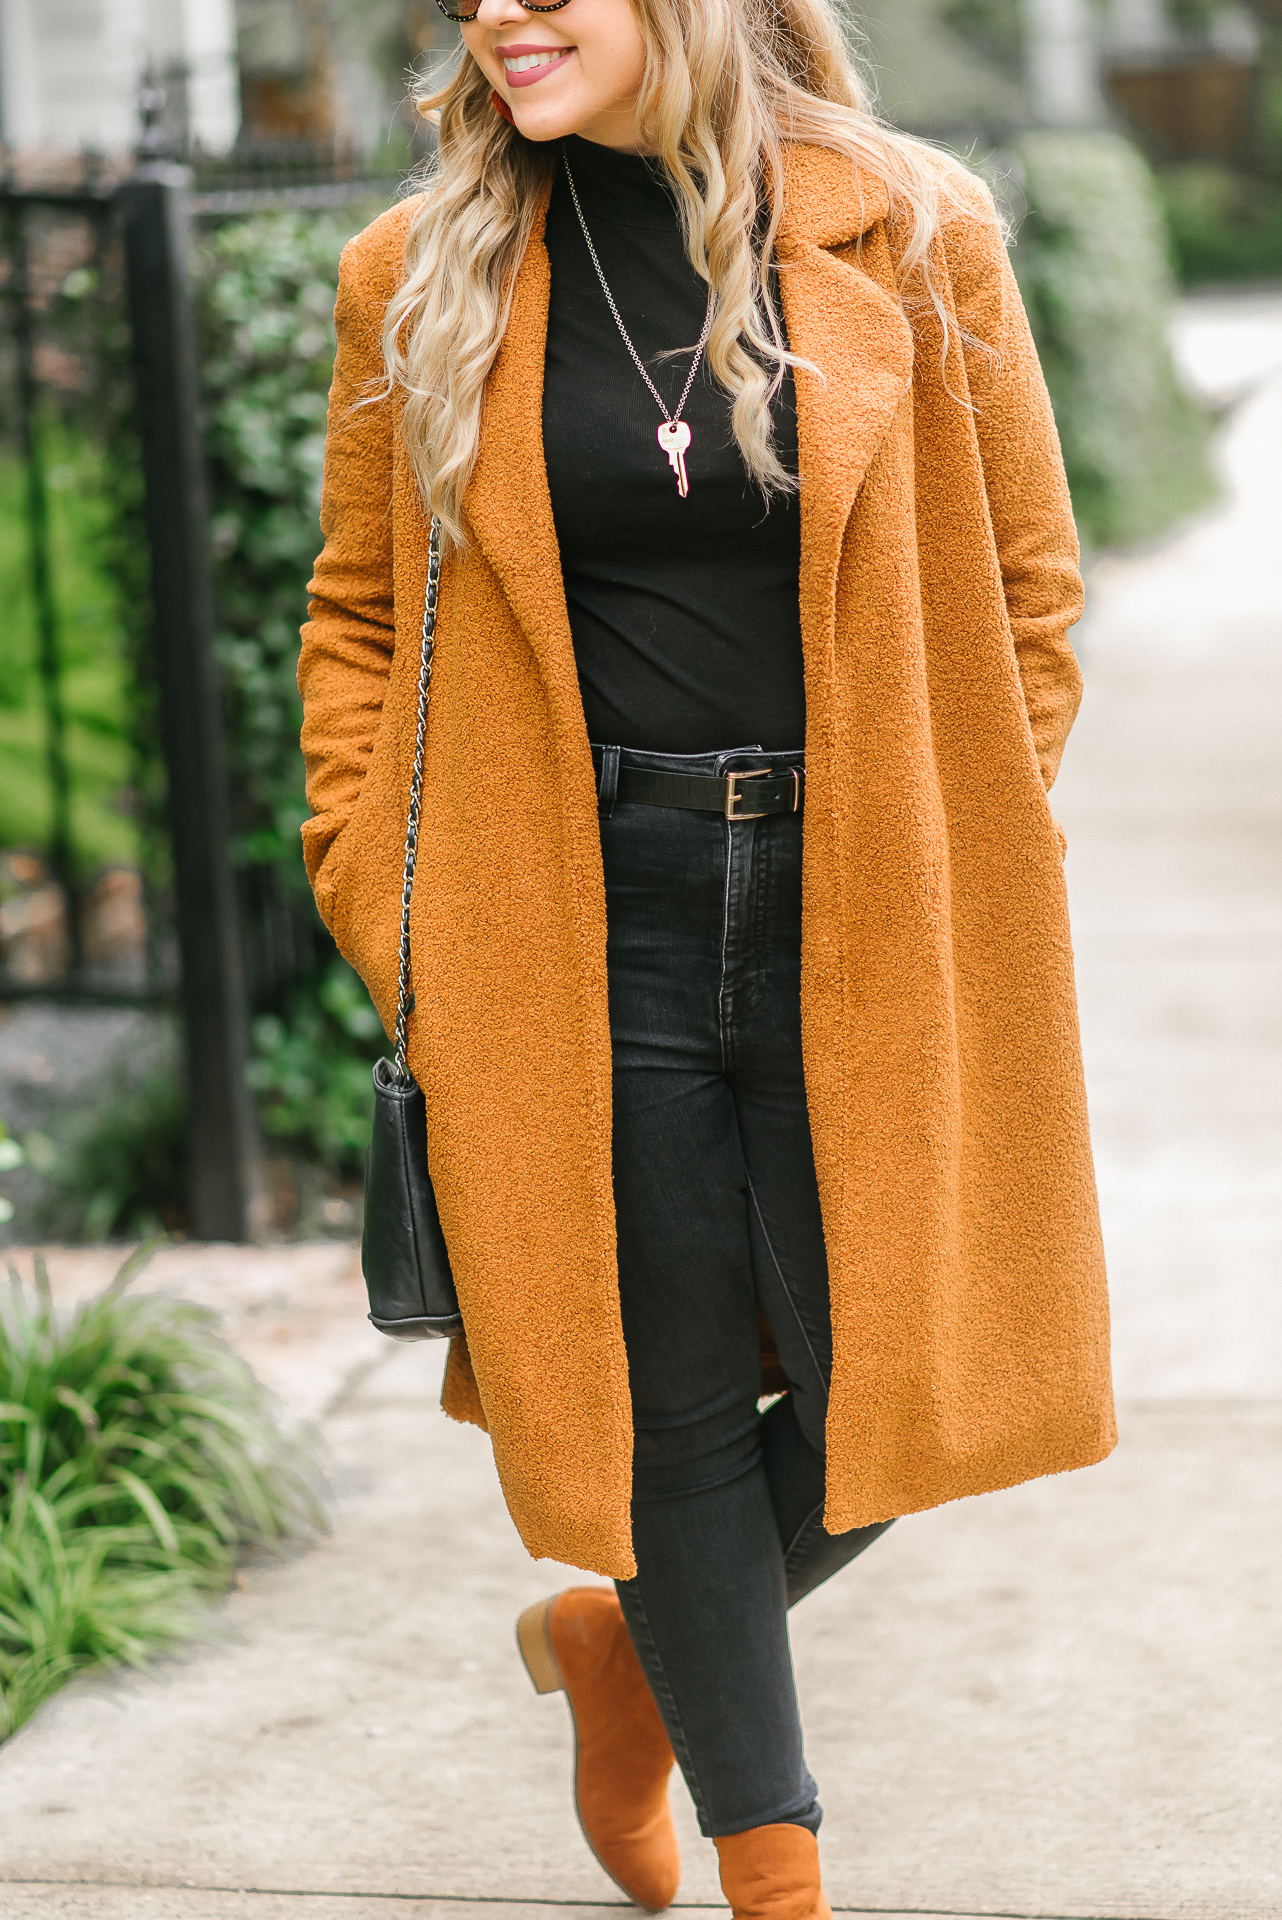 How to Style Brown Teddy Coat and Black Jeans - Fall Fashion on Cup of Charisma